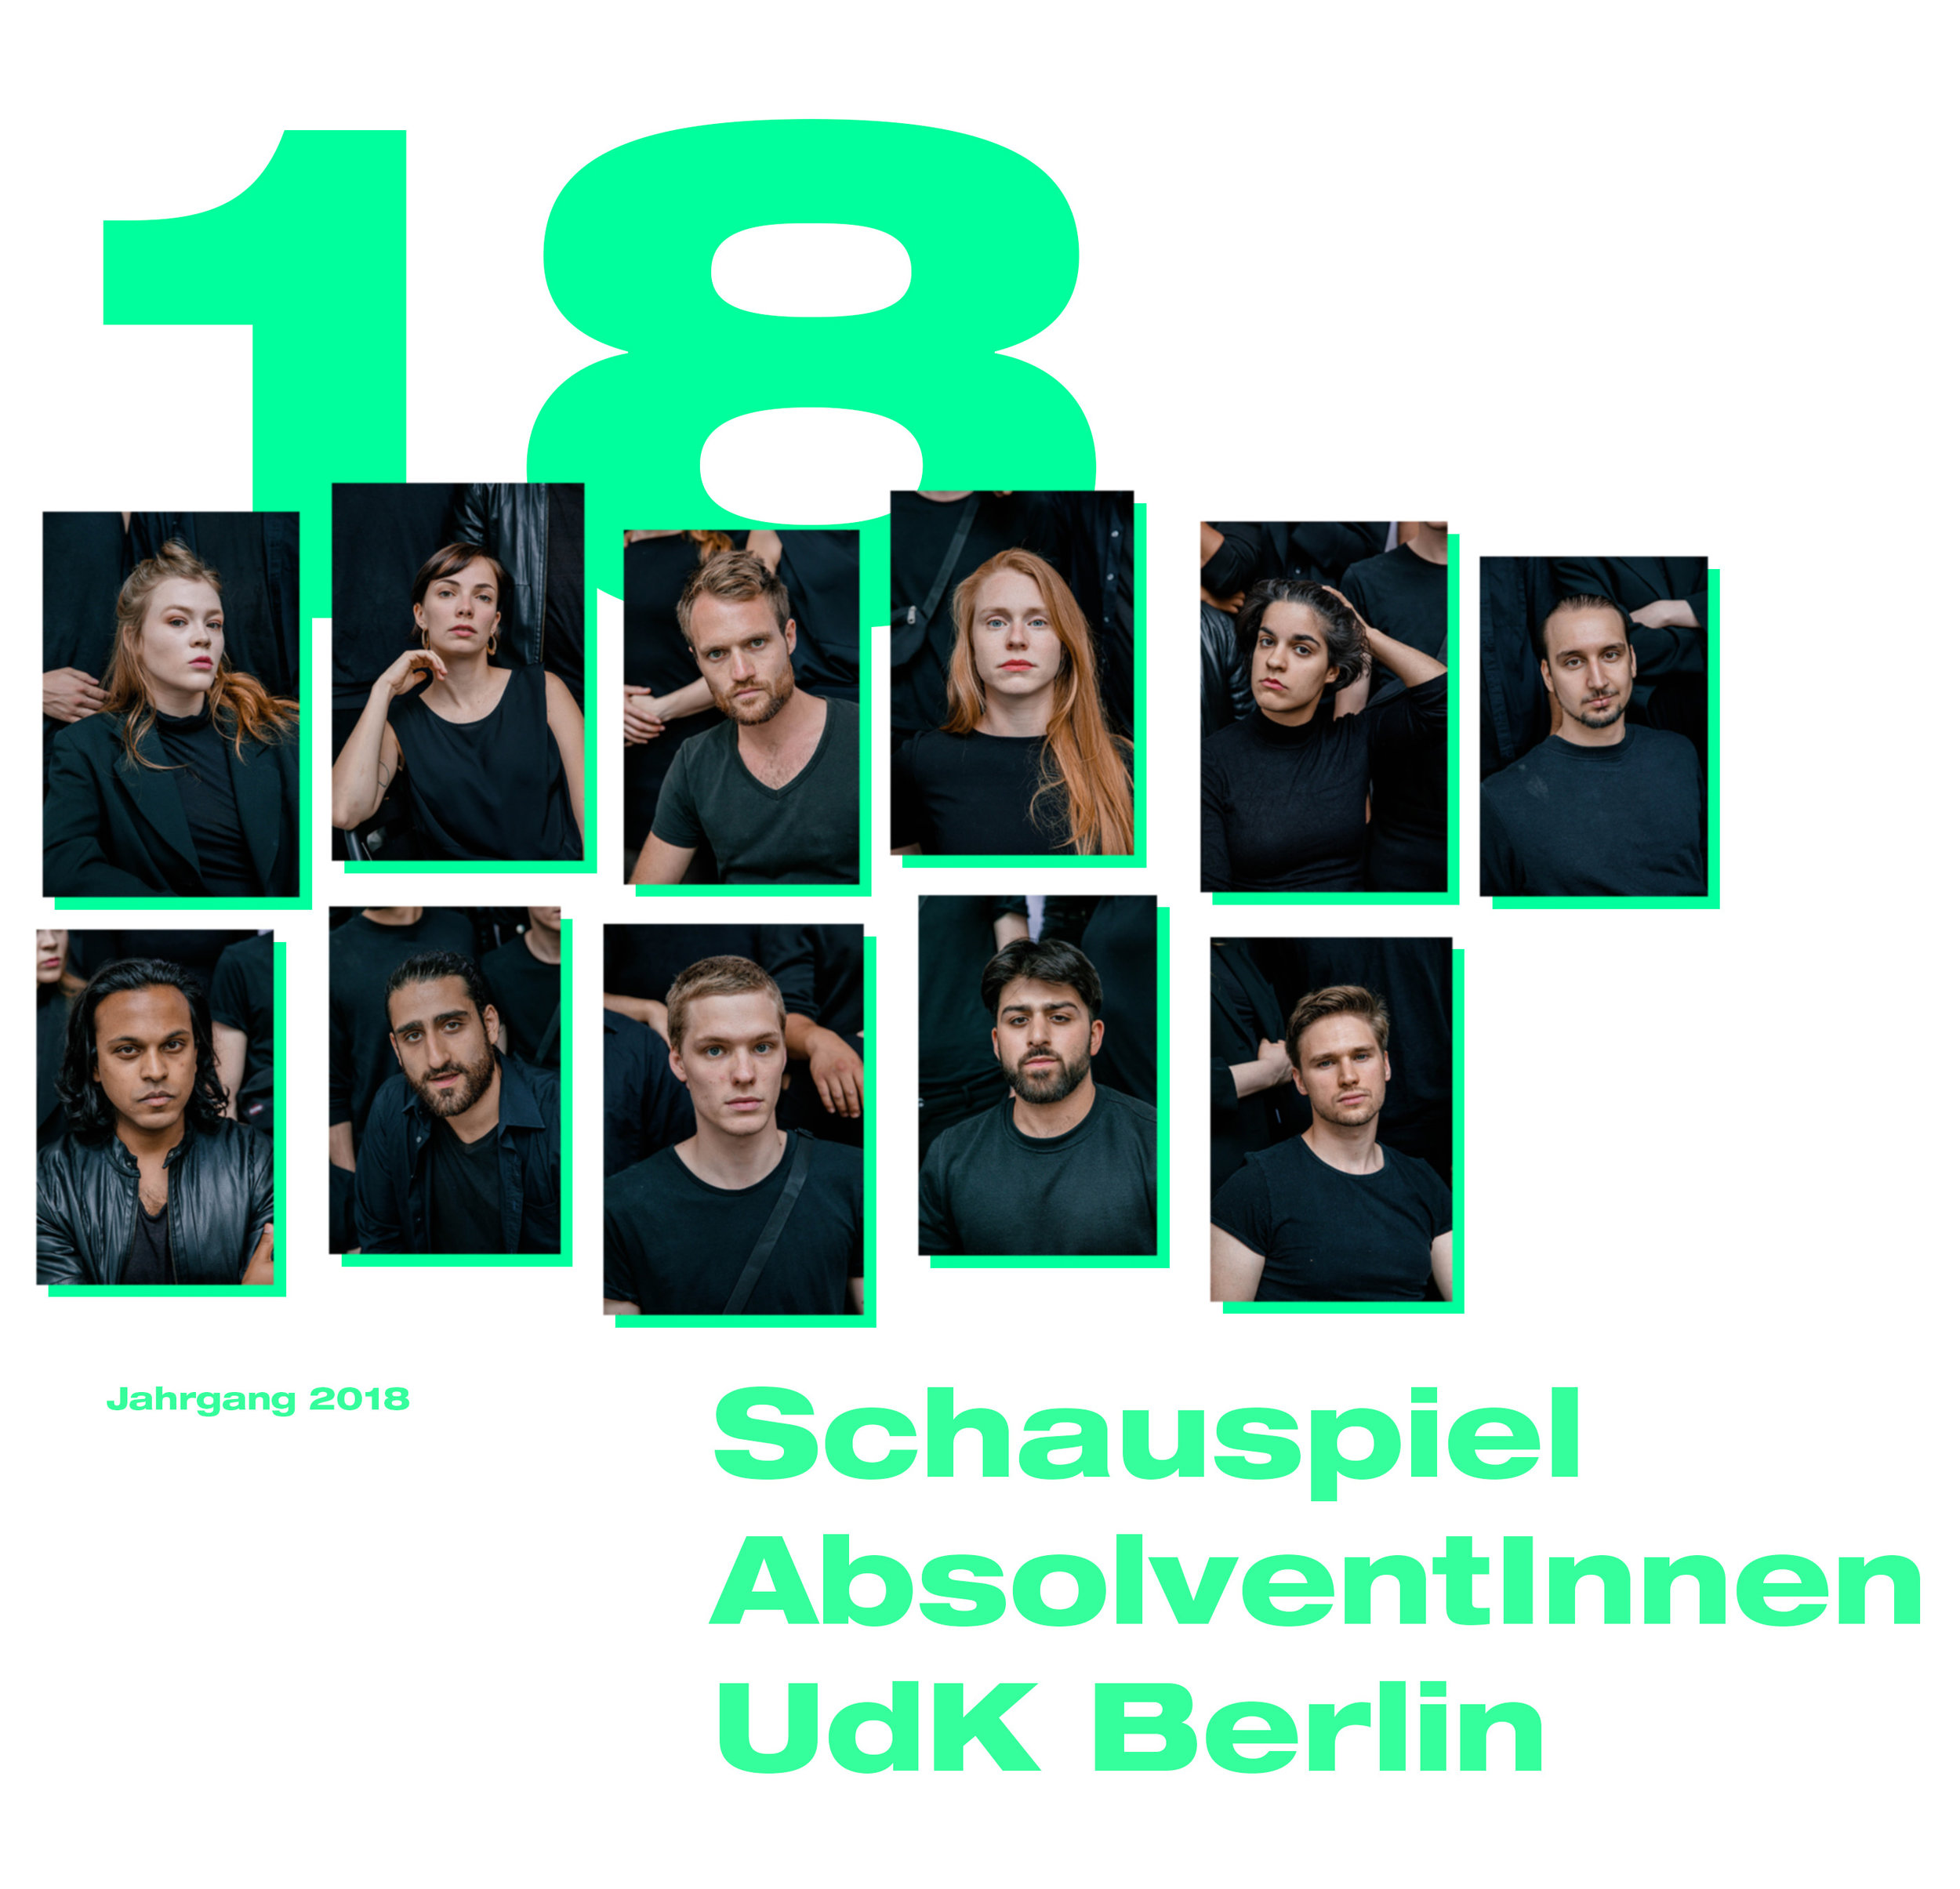 sleepless_creative_schauspiel_absolventinnen_2018_web_2.jpg